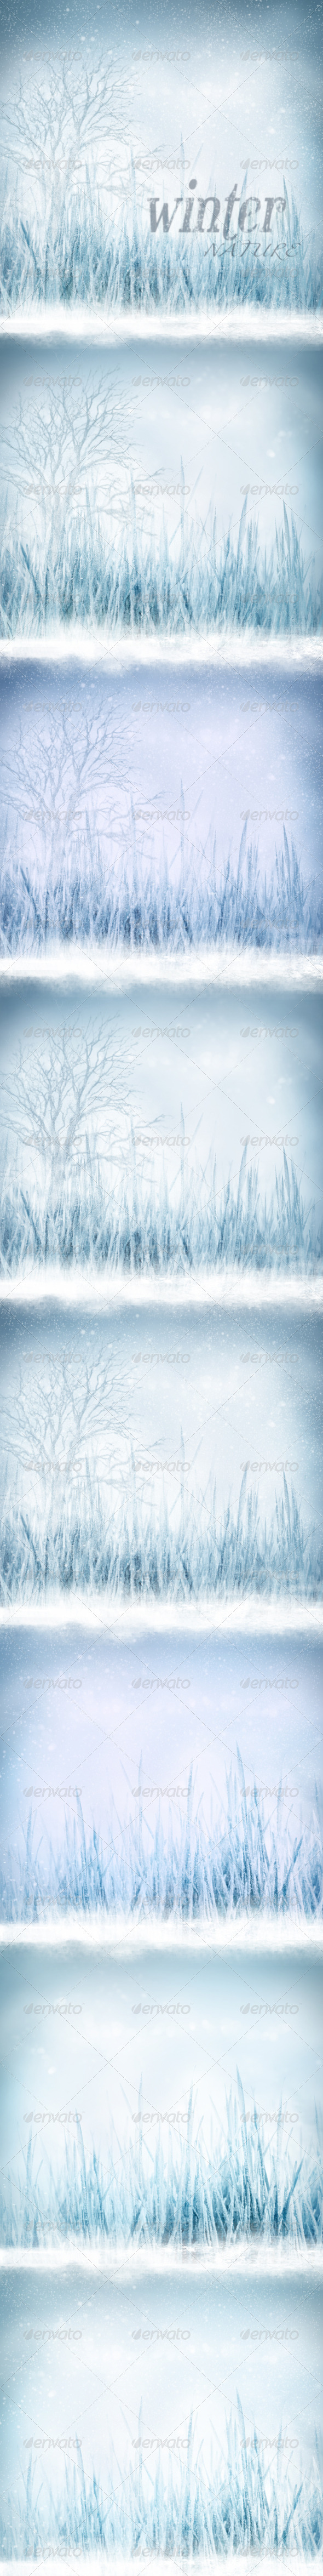 Nature Winter Backgrounds with Frozen Fields - Nature Backgrounds